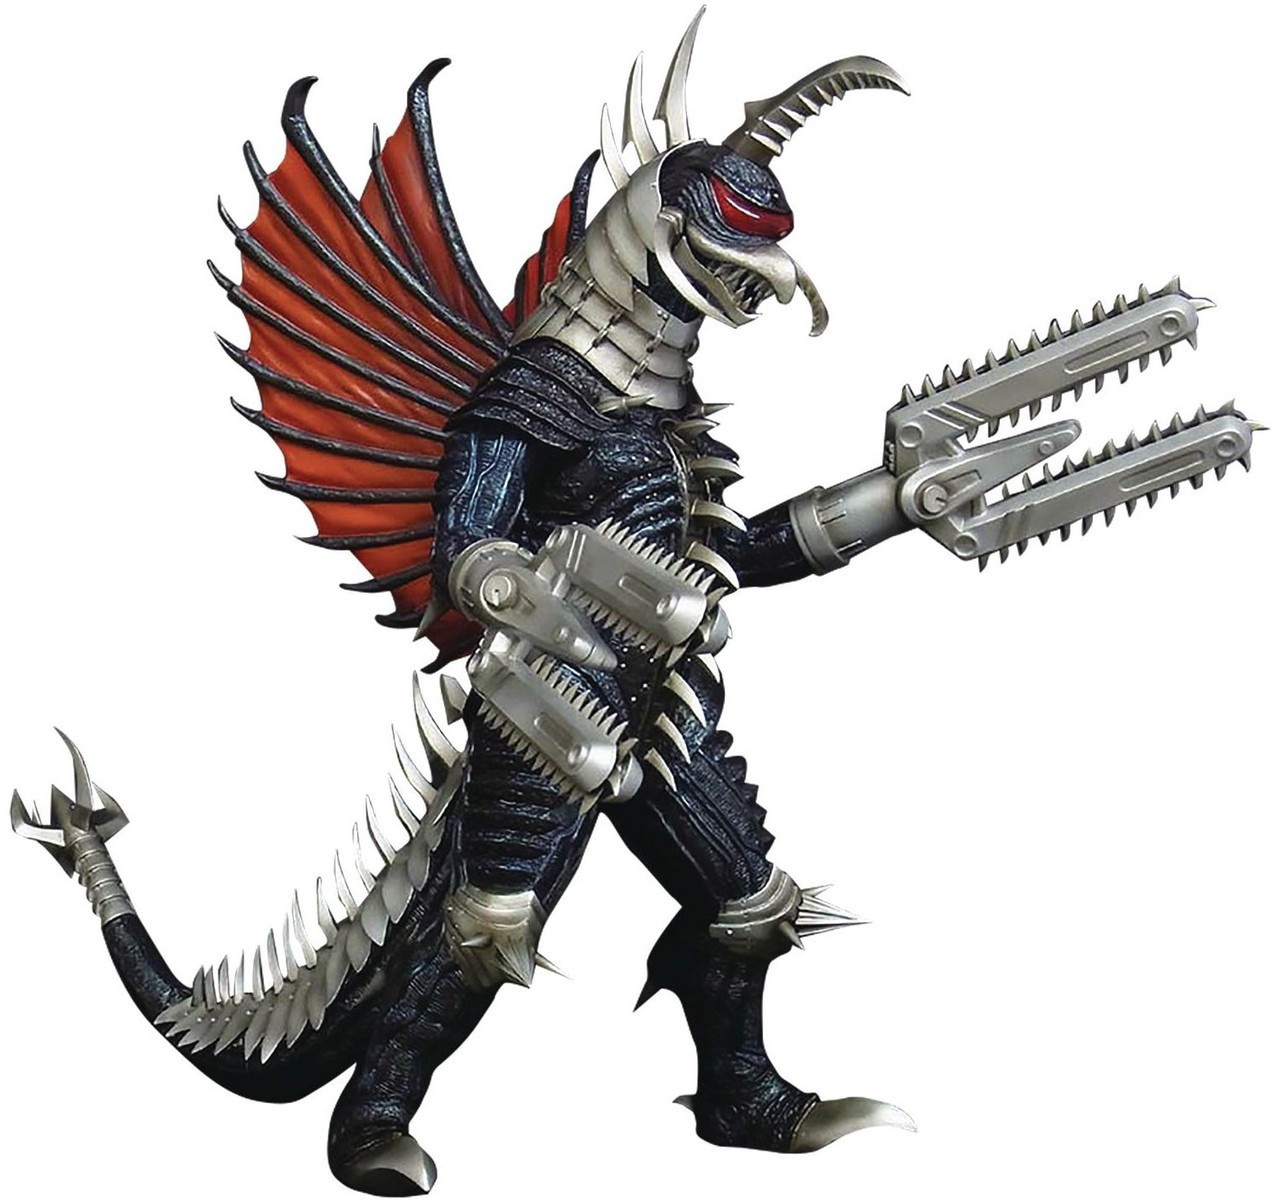 Godzilla 2004 Final Wars Gigan 12 Statue Chainsaw Arms X ...